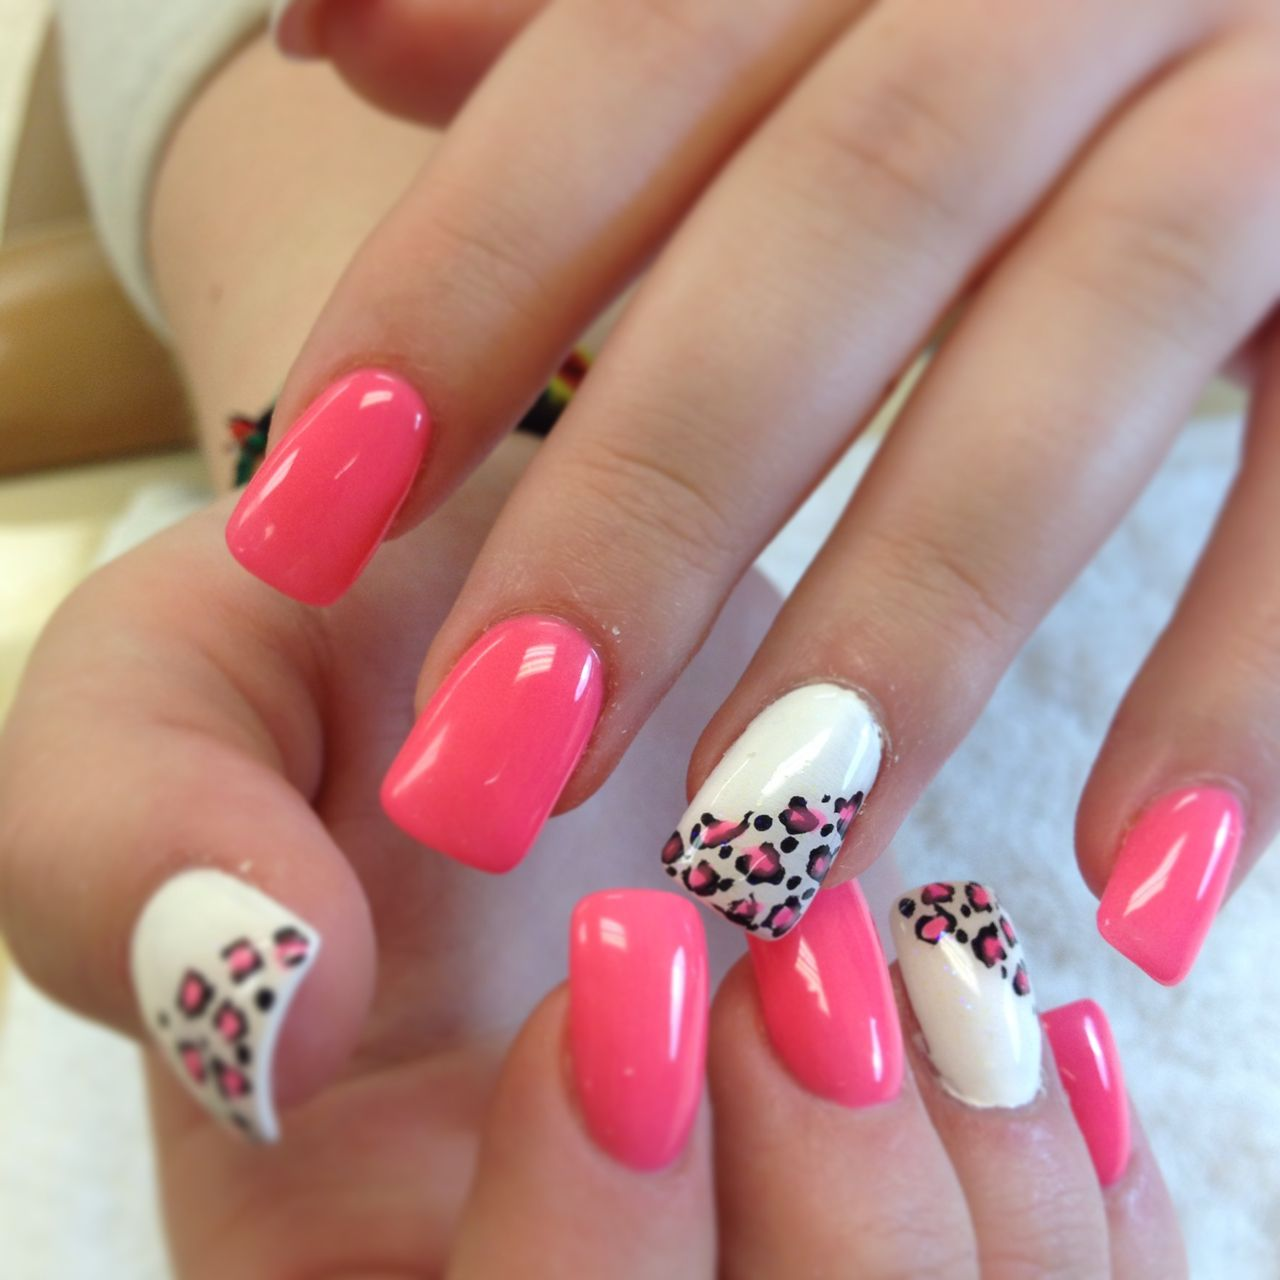 Nail care expensive nails pinterest nail care manicure and